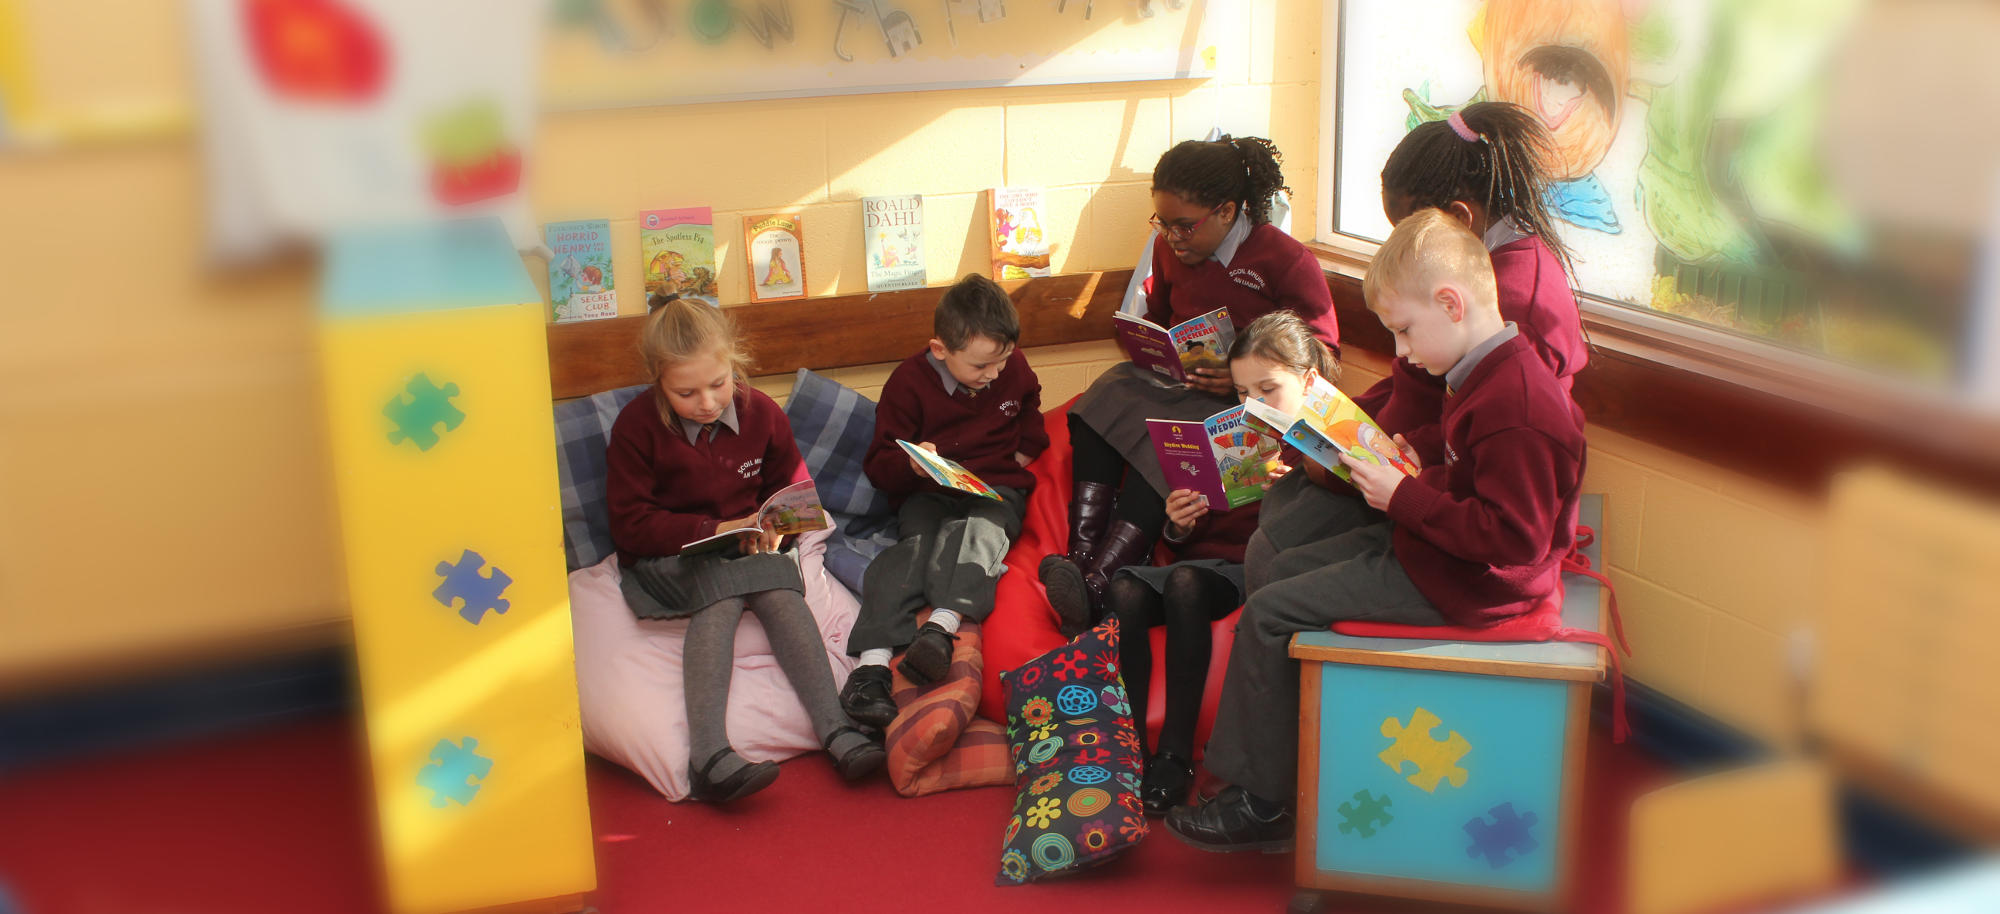 Children reading books in a cosy corner of one of the classrooms.